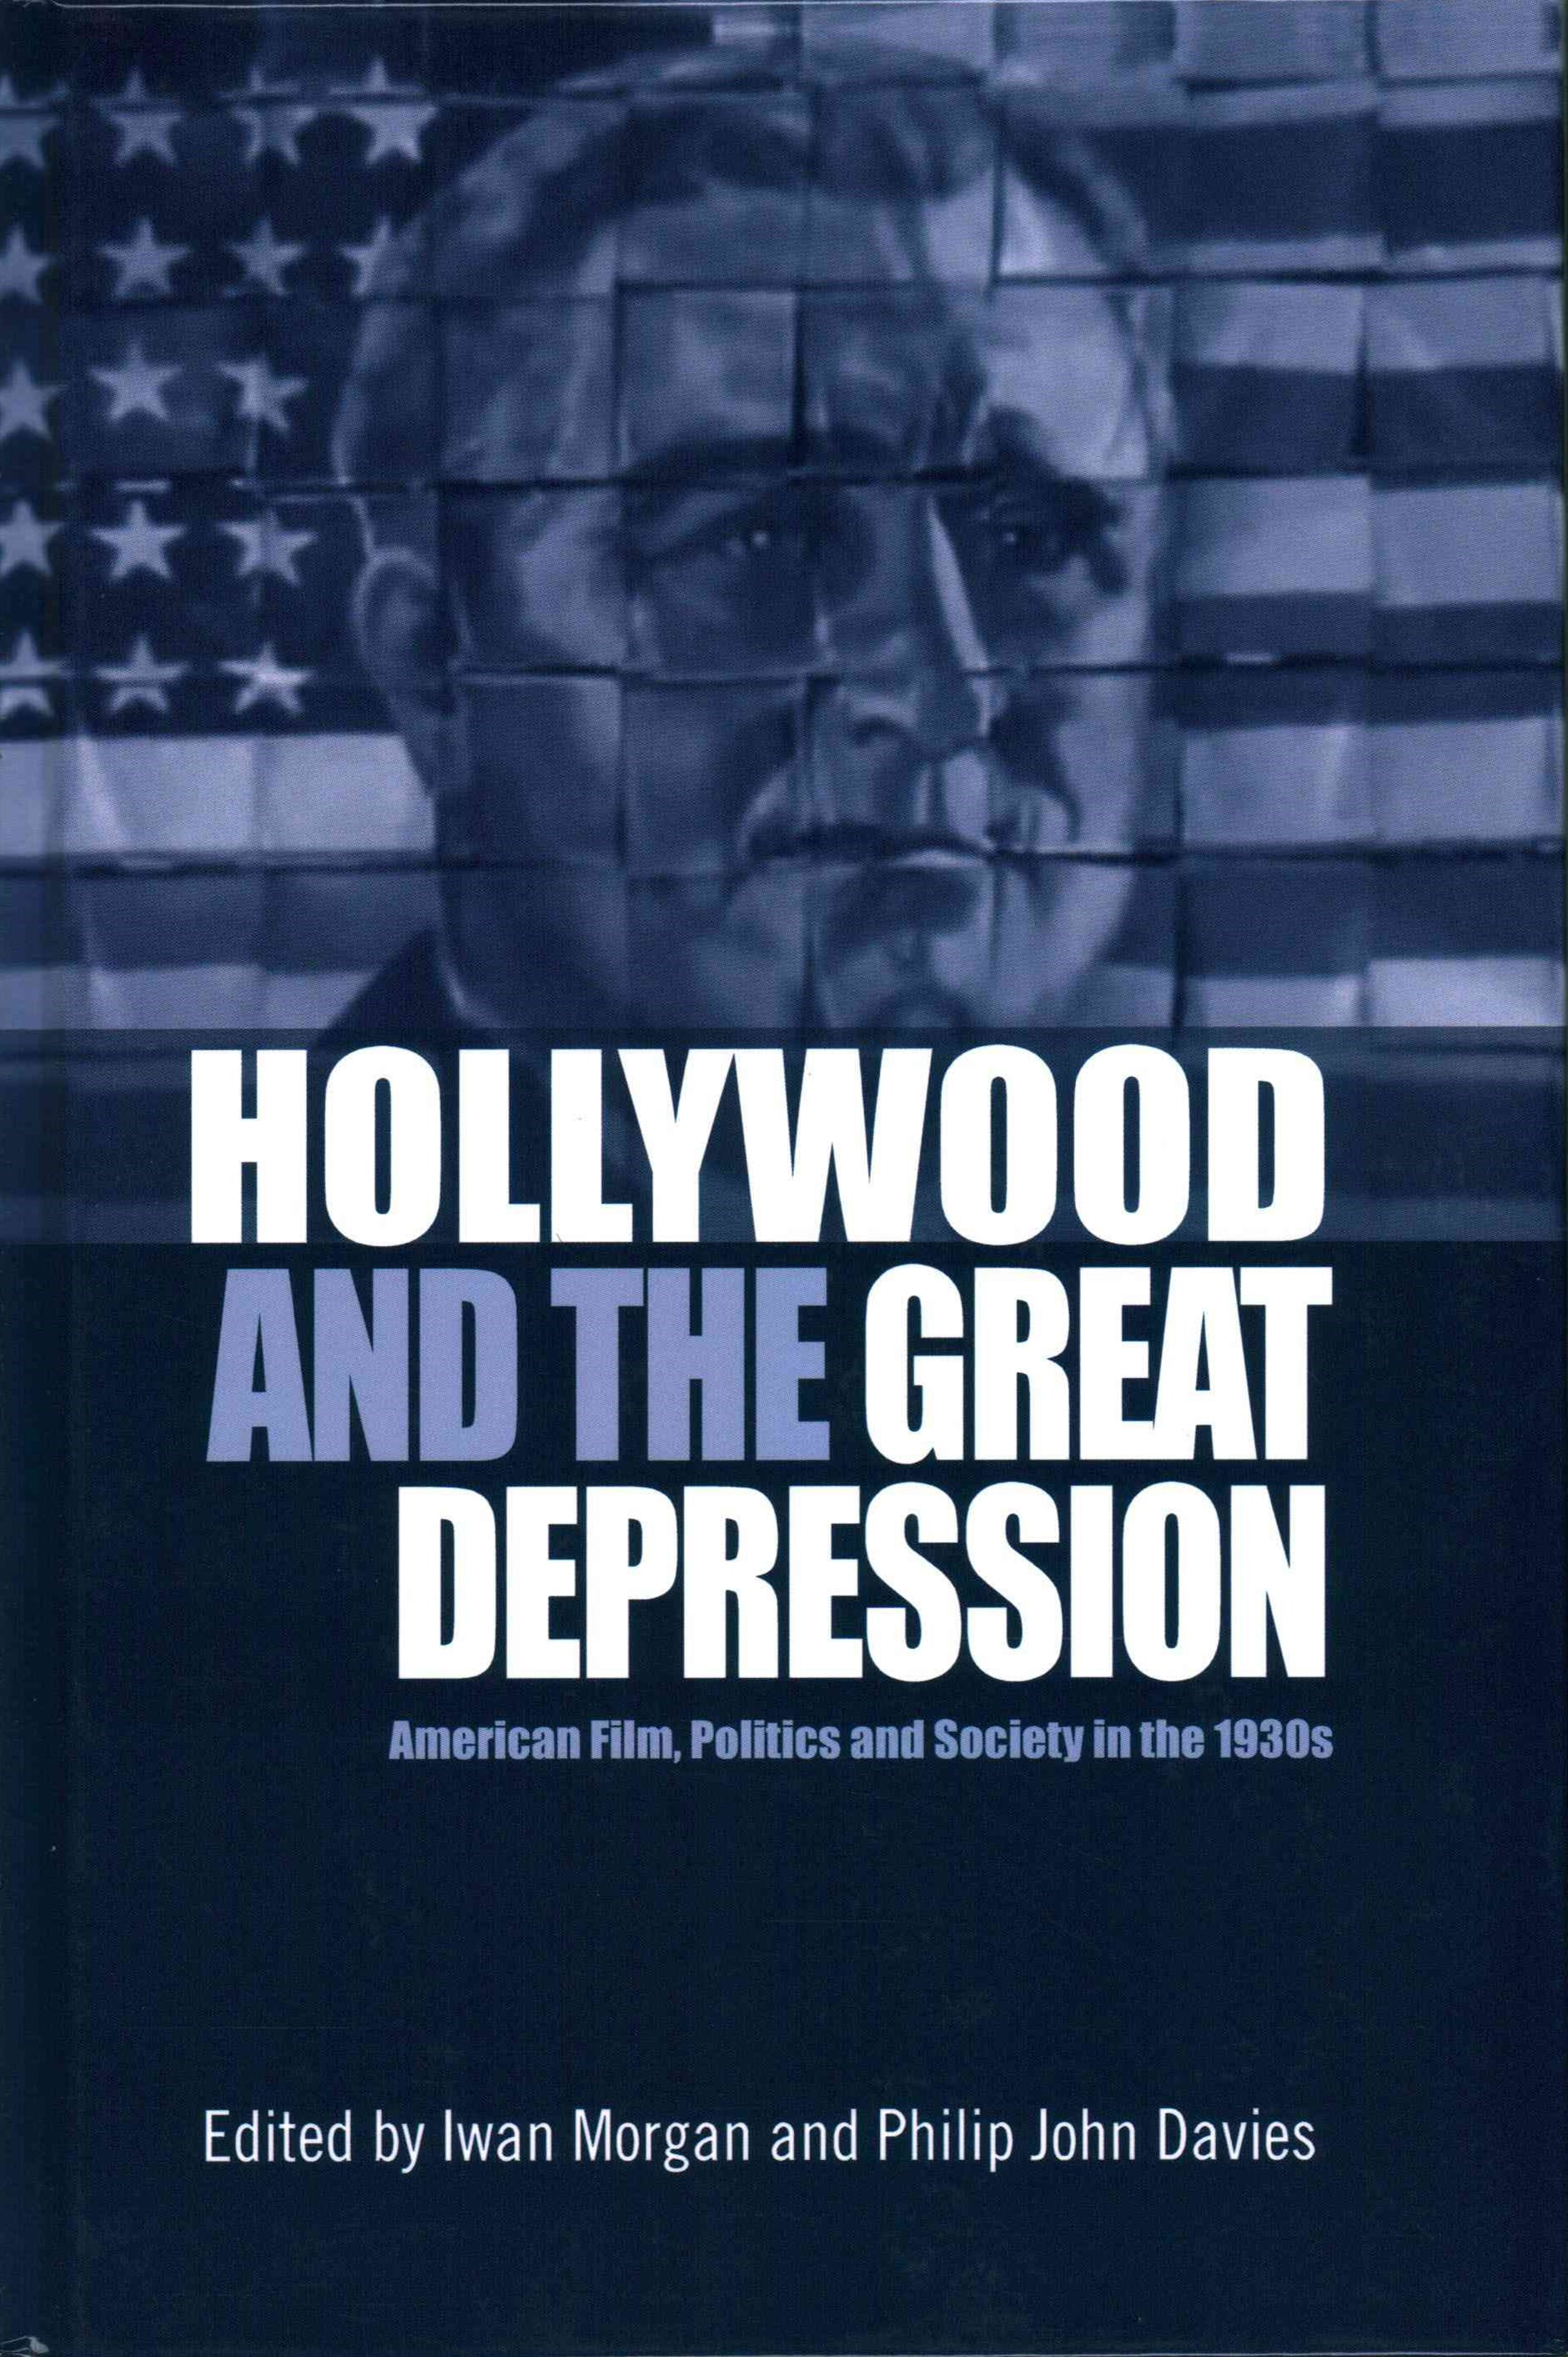 Hollywood and the Great Depression